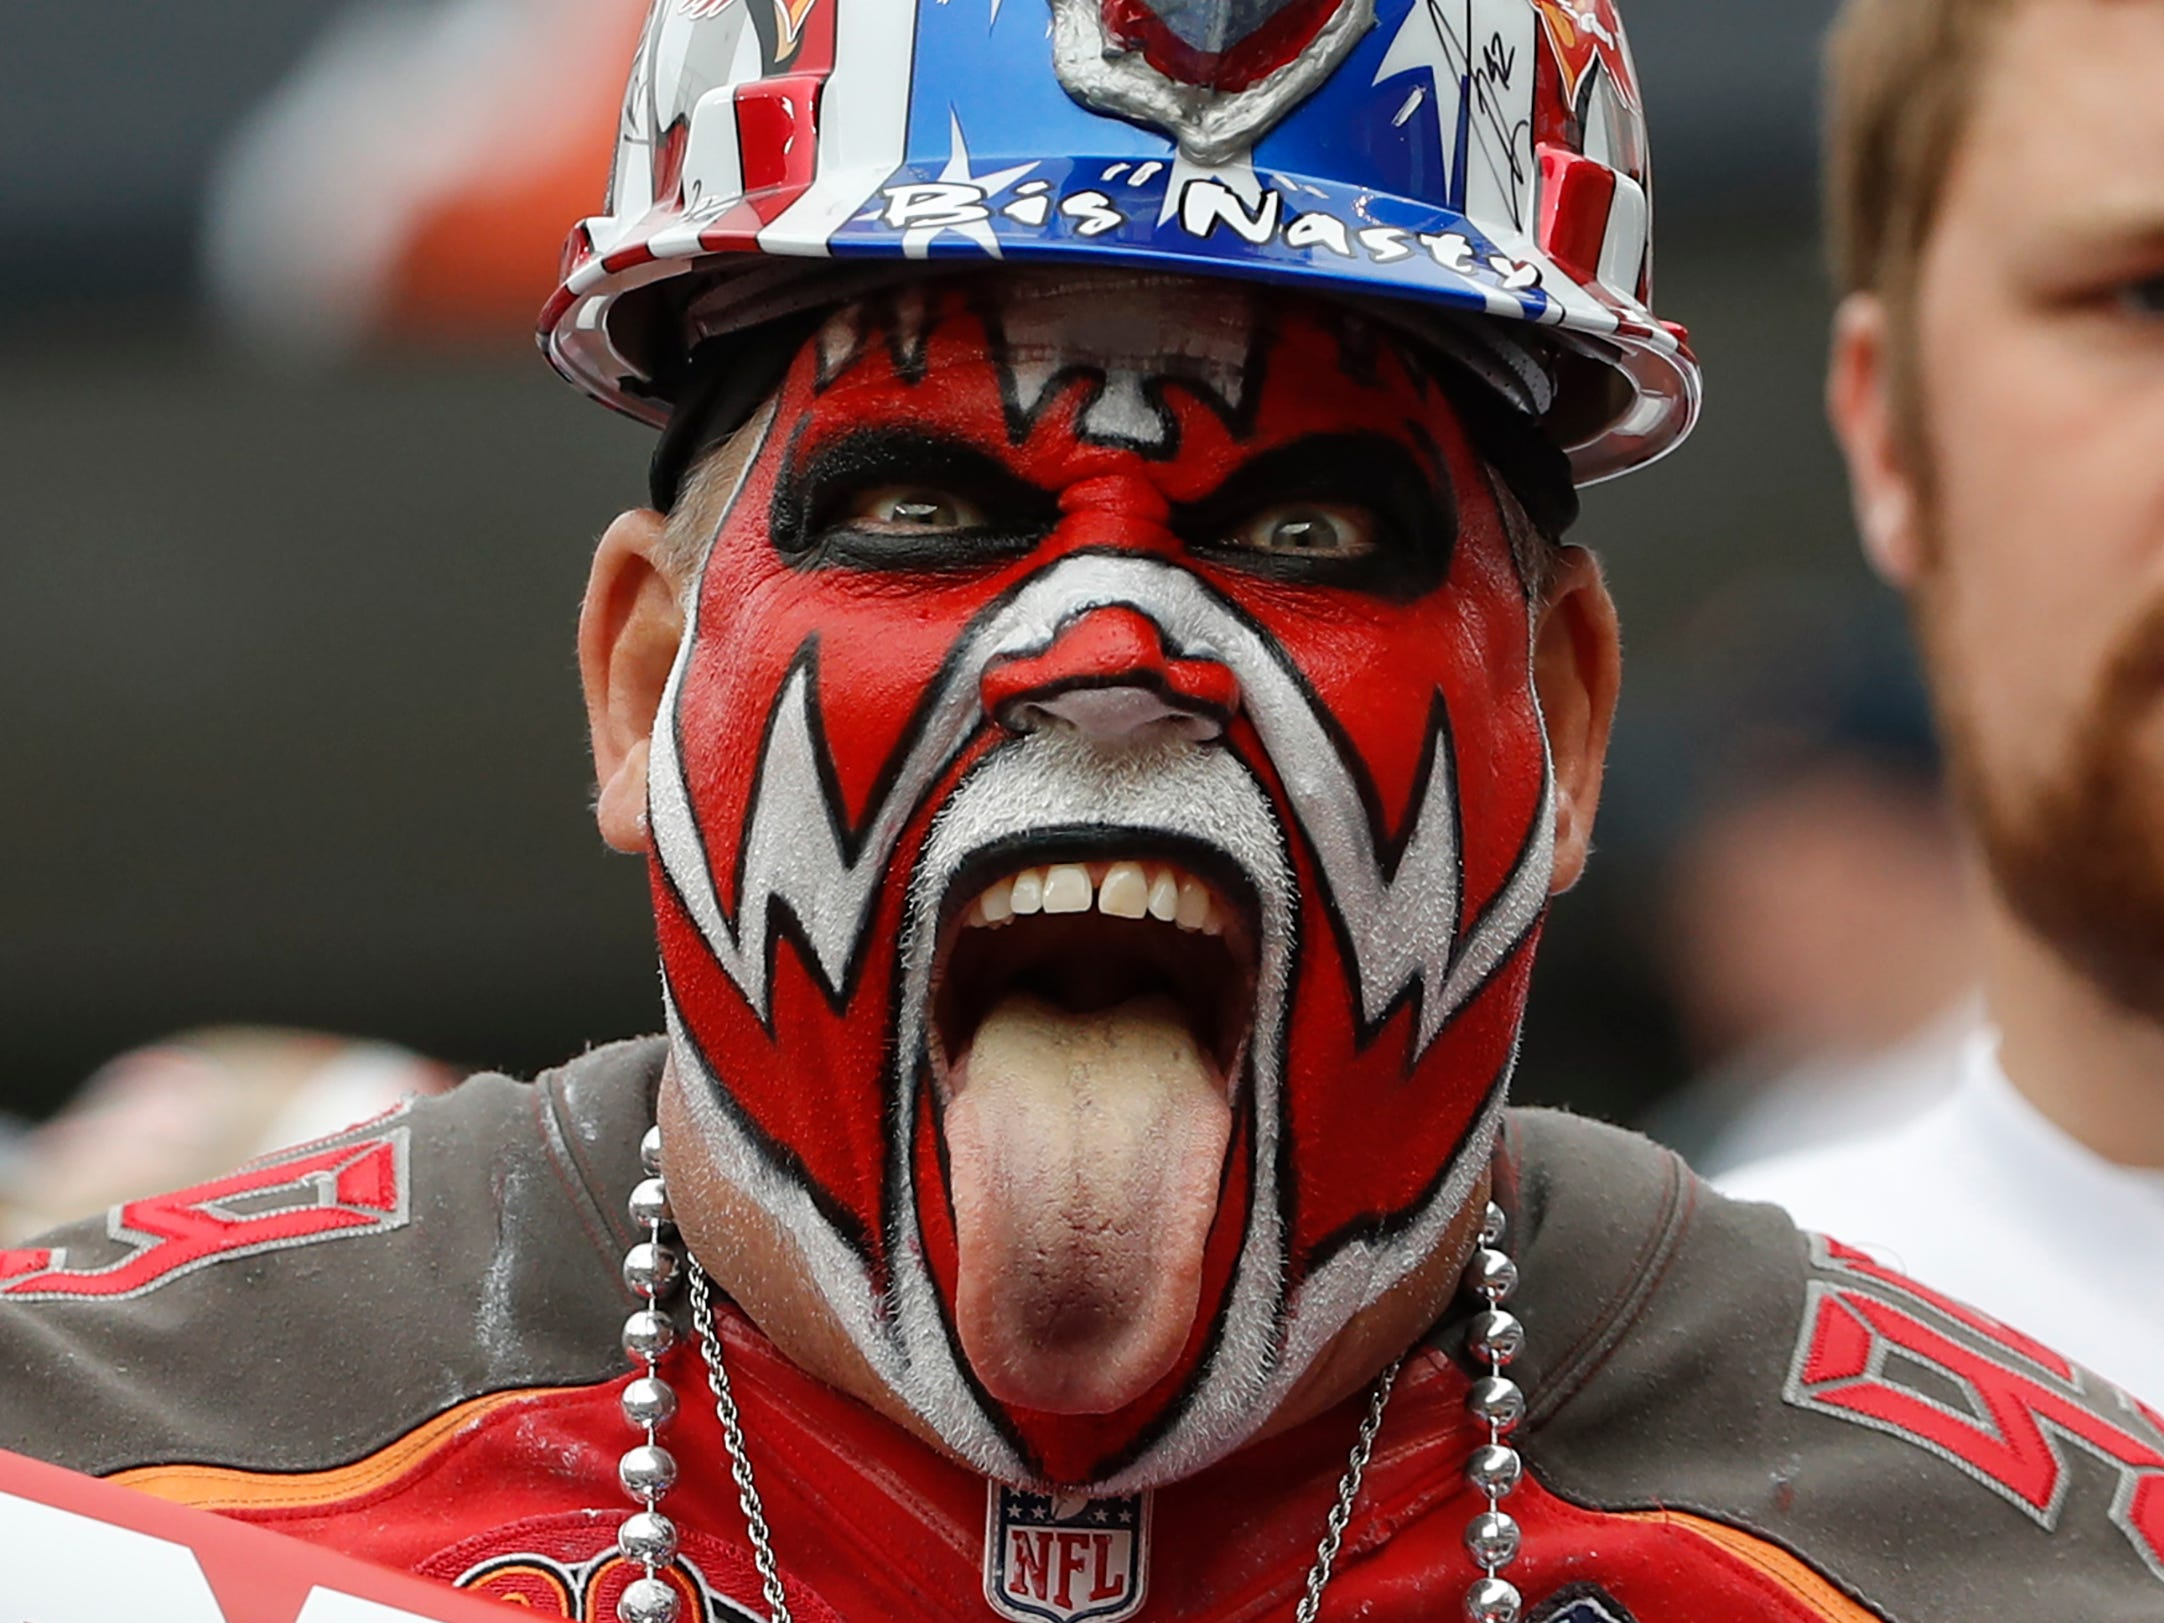 A Tampa Bay Buccaneers fan cheers on his team against the Chicago Bears at Soldier Field.